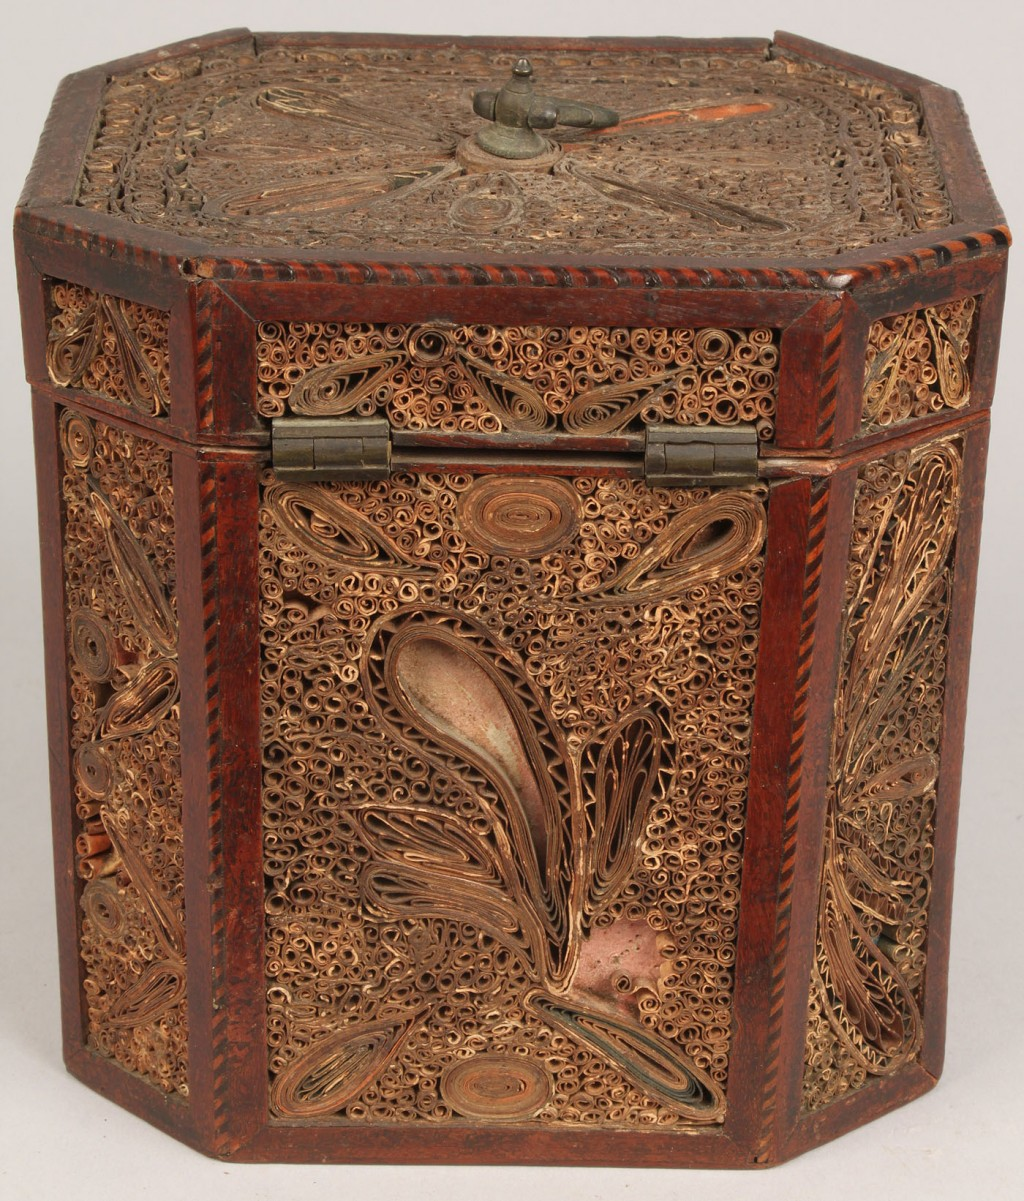 Lot 99: Quillwork box or tea caddy octagonal